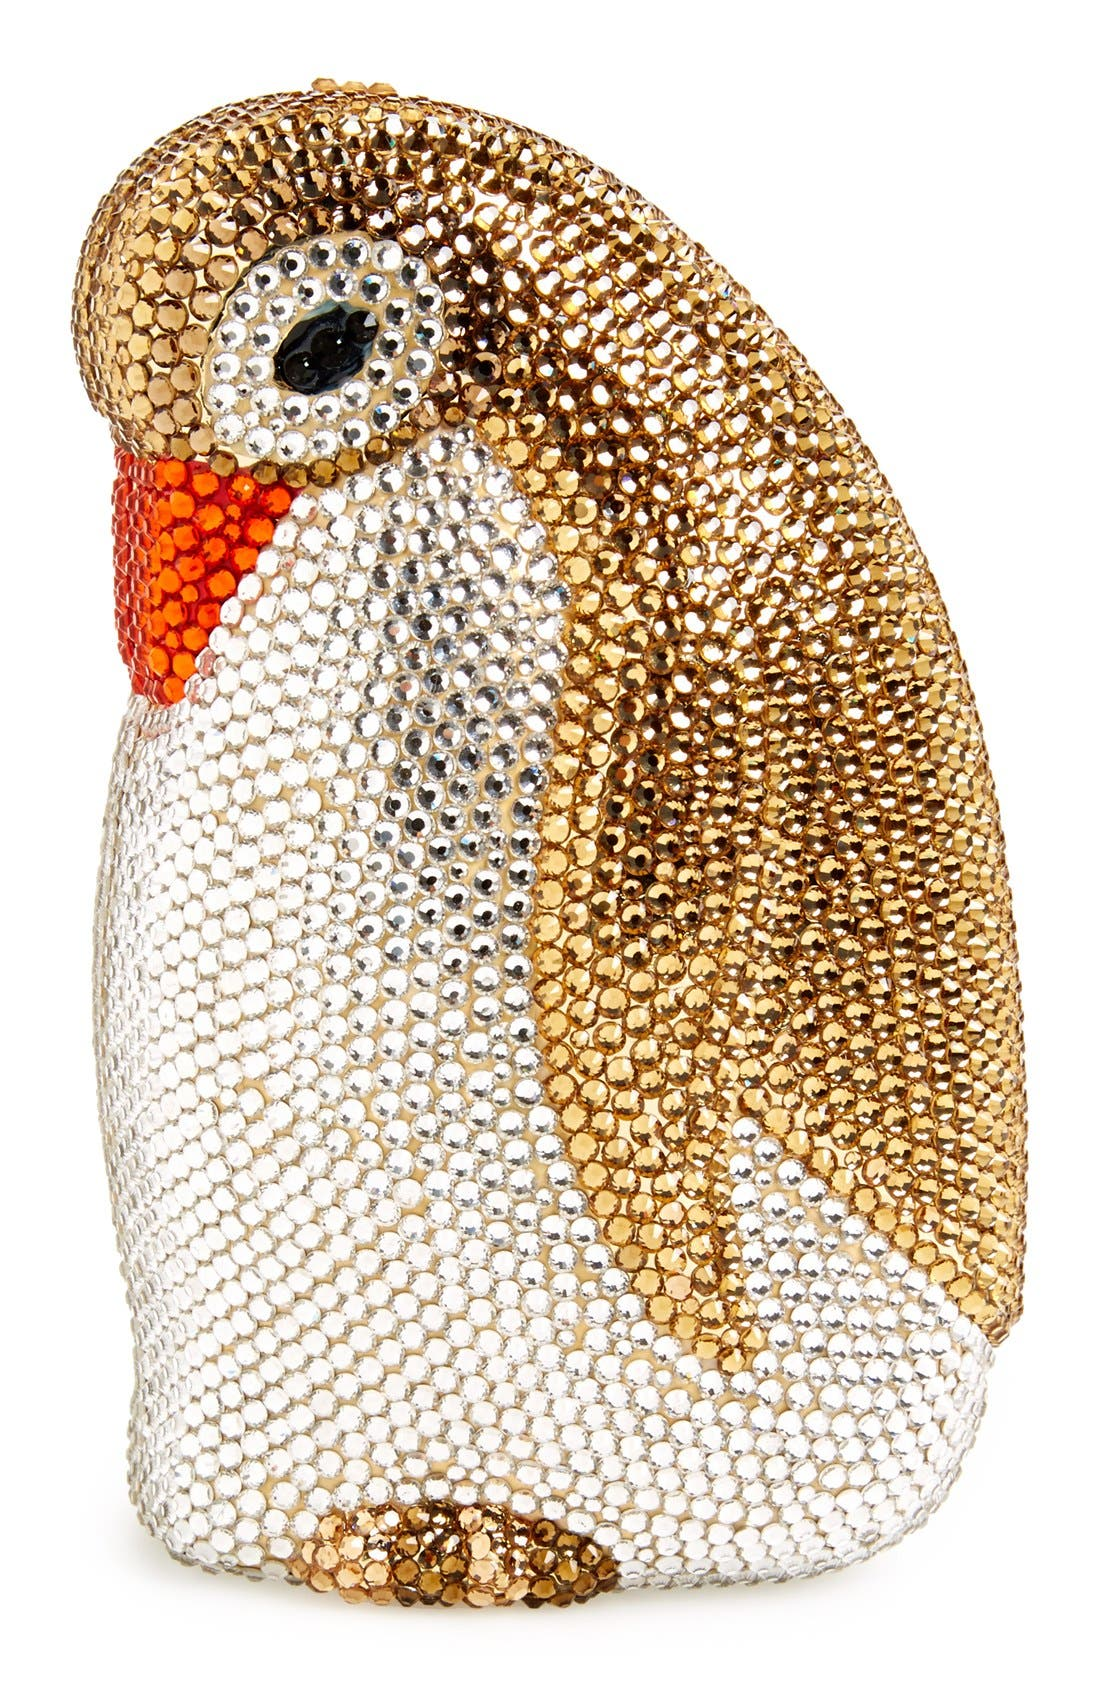 Main Image - Natasha Couture 'Penny The Penguin' Crystal Clutch